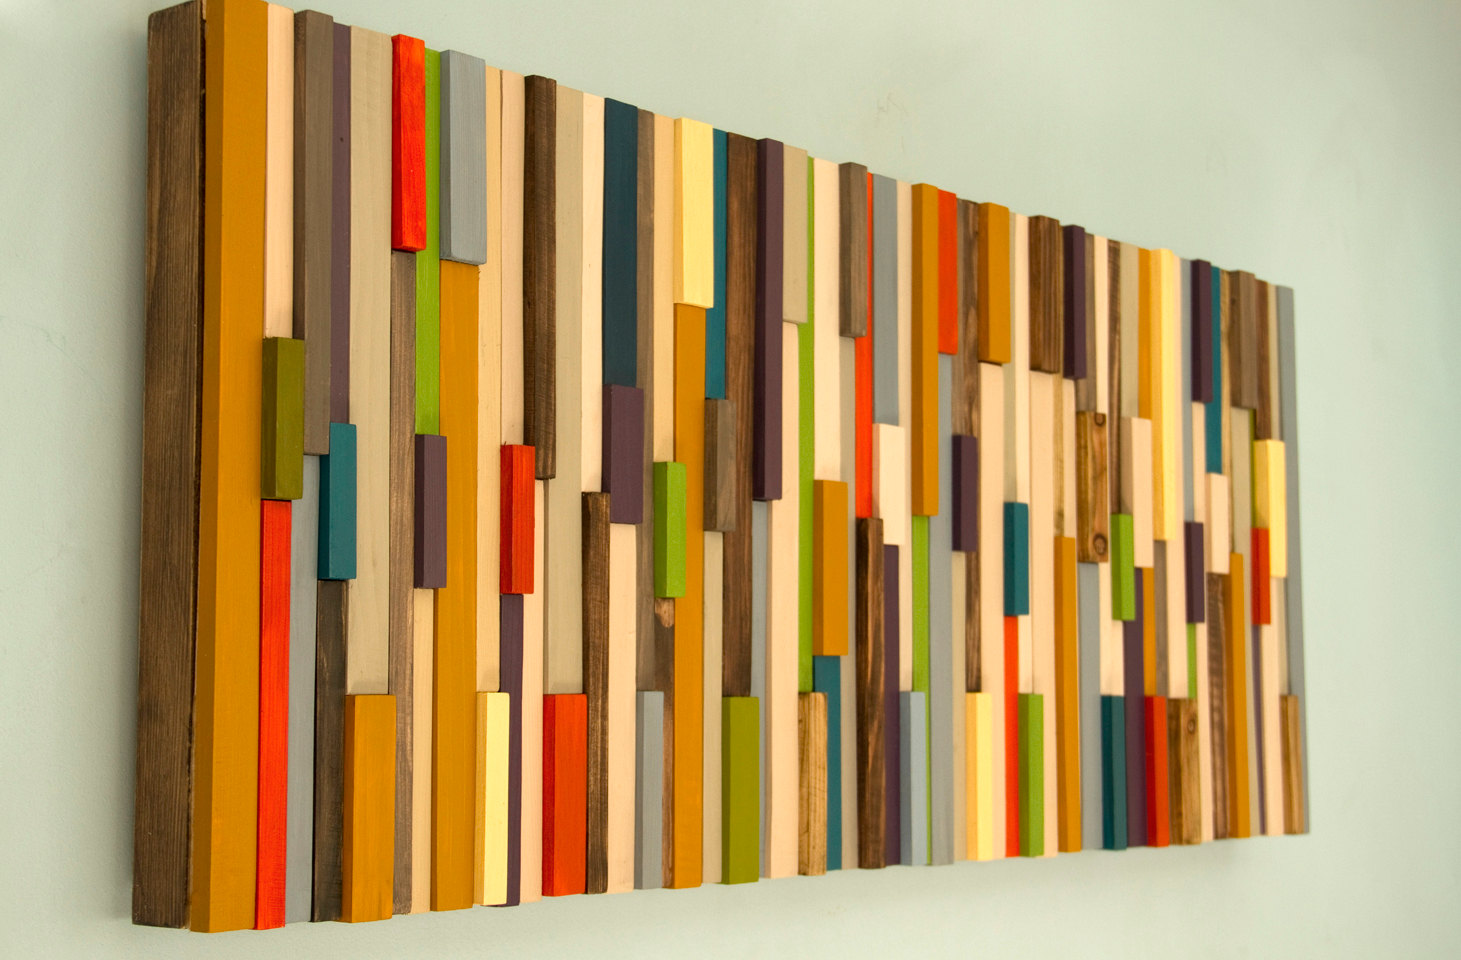 Mid Century wall art, reclaimed wood art sculpture, SALE painted wood pieces, 2016 colour trends